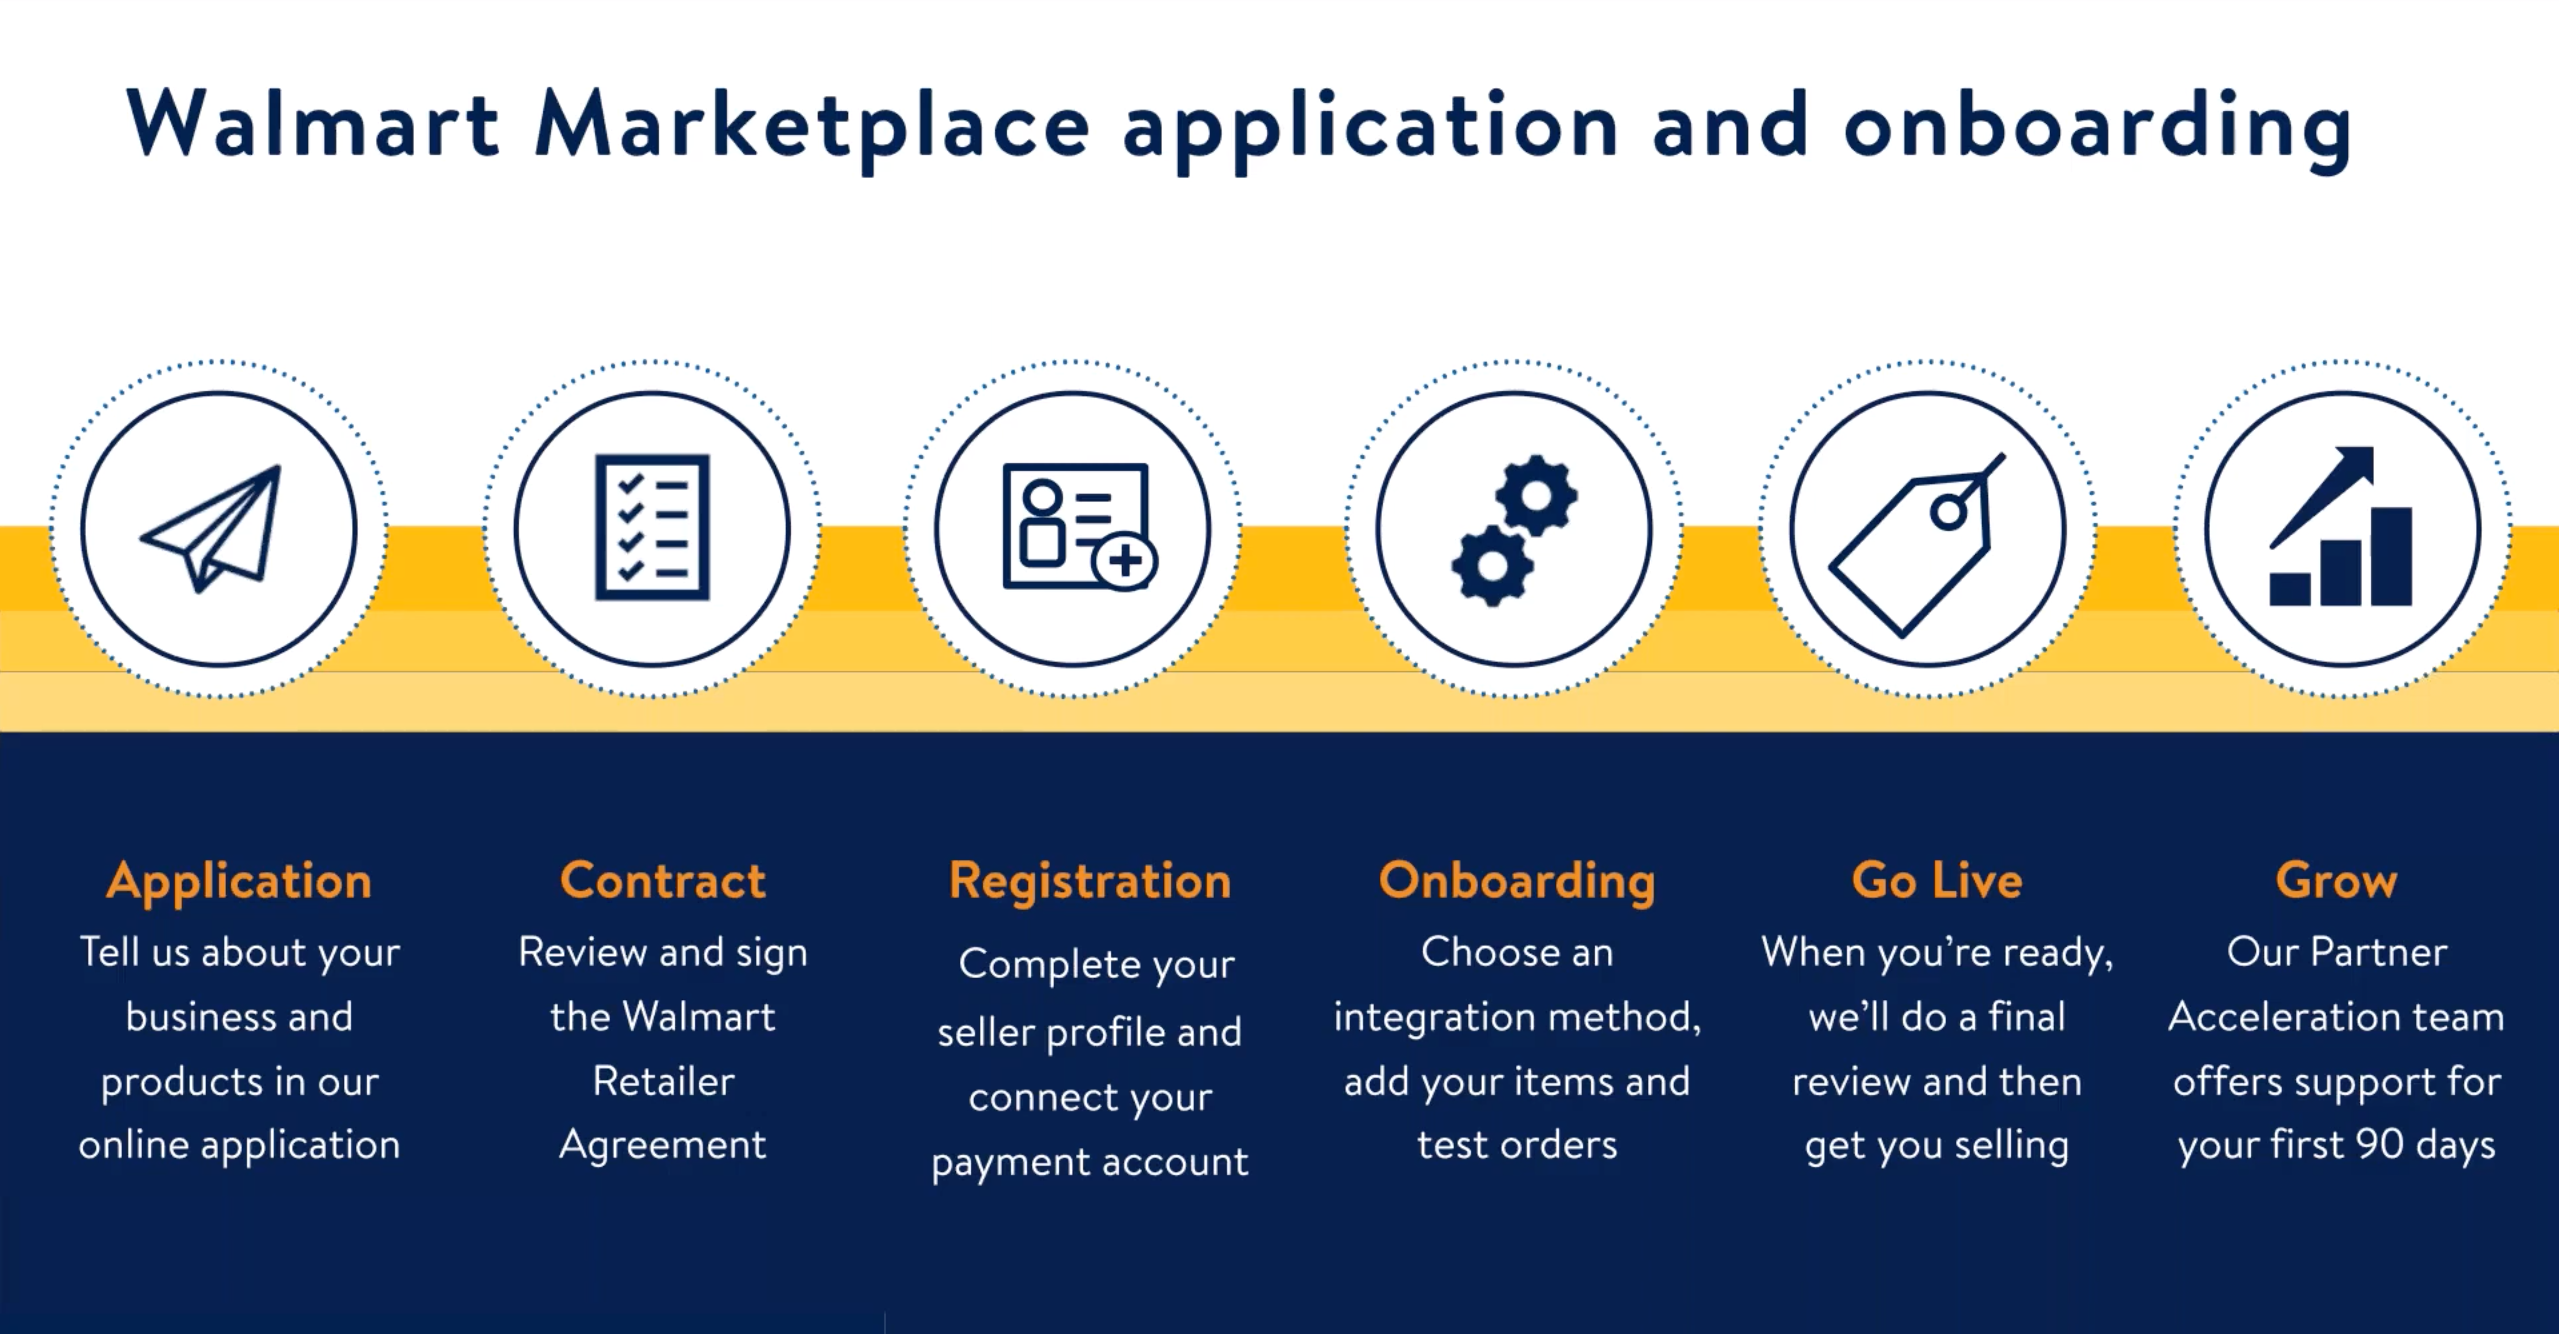 Walmart Marketplace application and onboarding